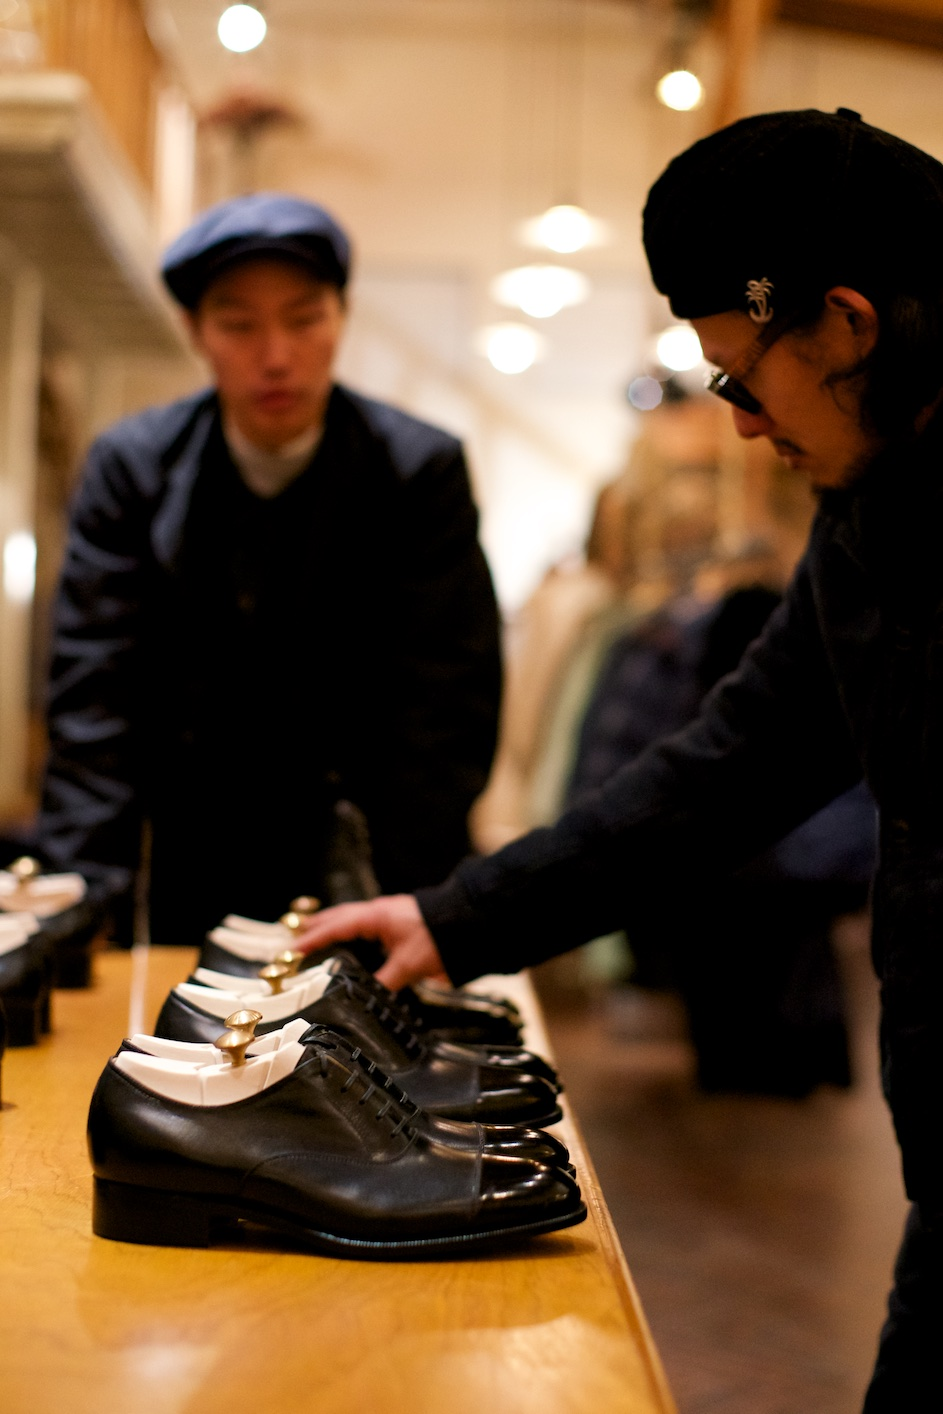 STEMSHOES|FITTING受注会 at PHAETON SMART CLOTHES